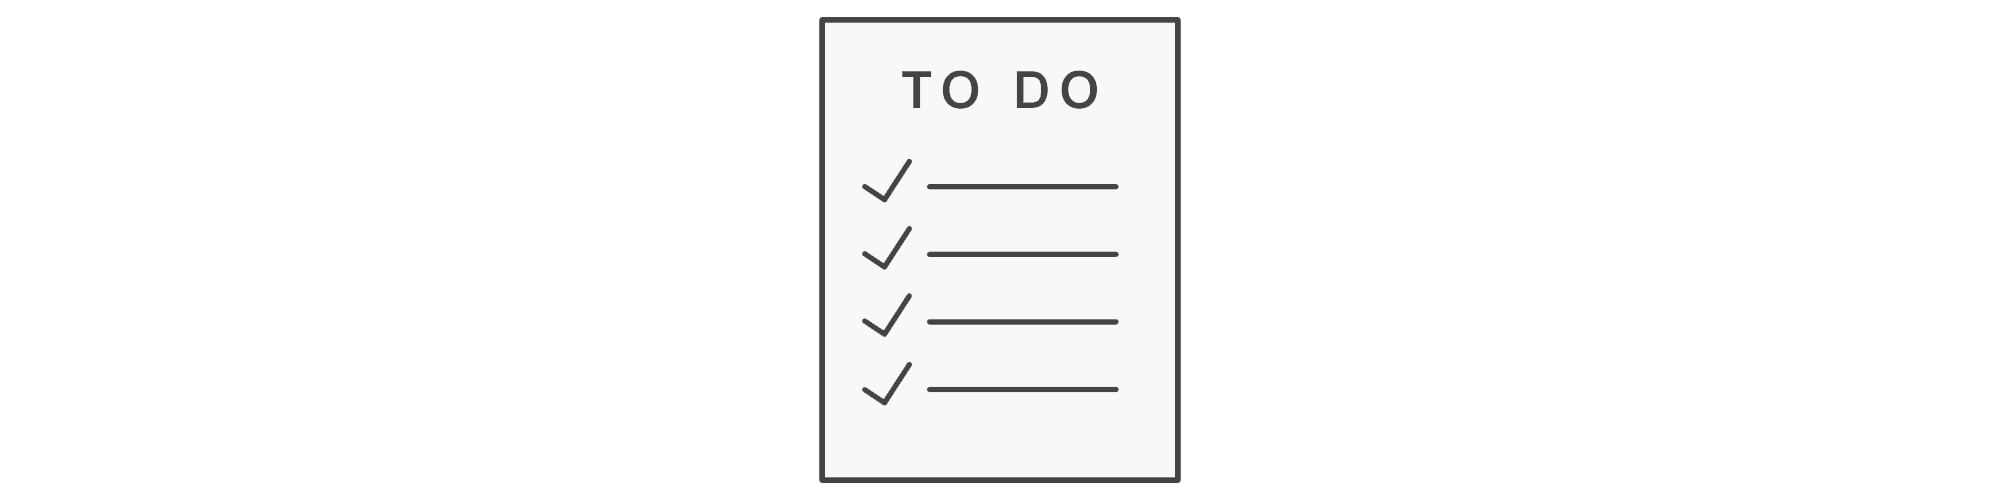 Checklist high resolution.png